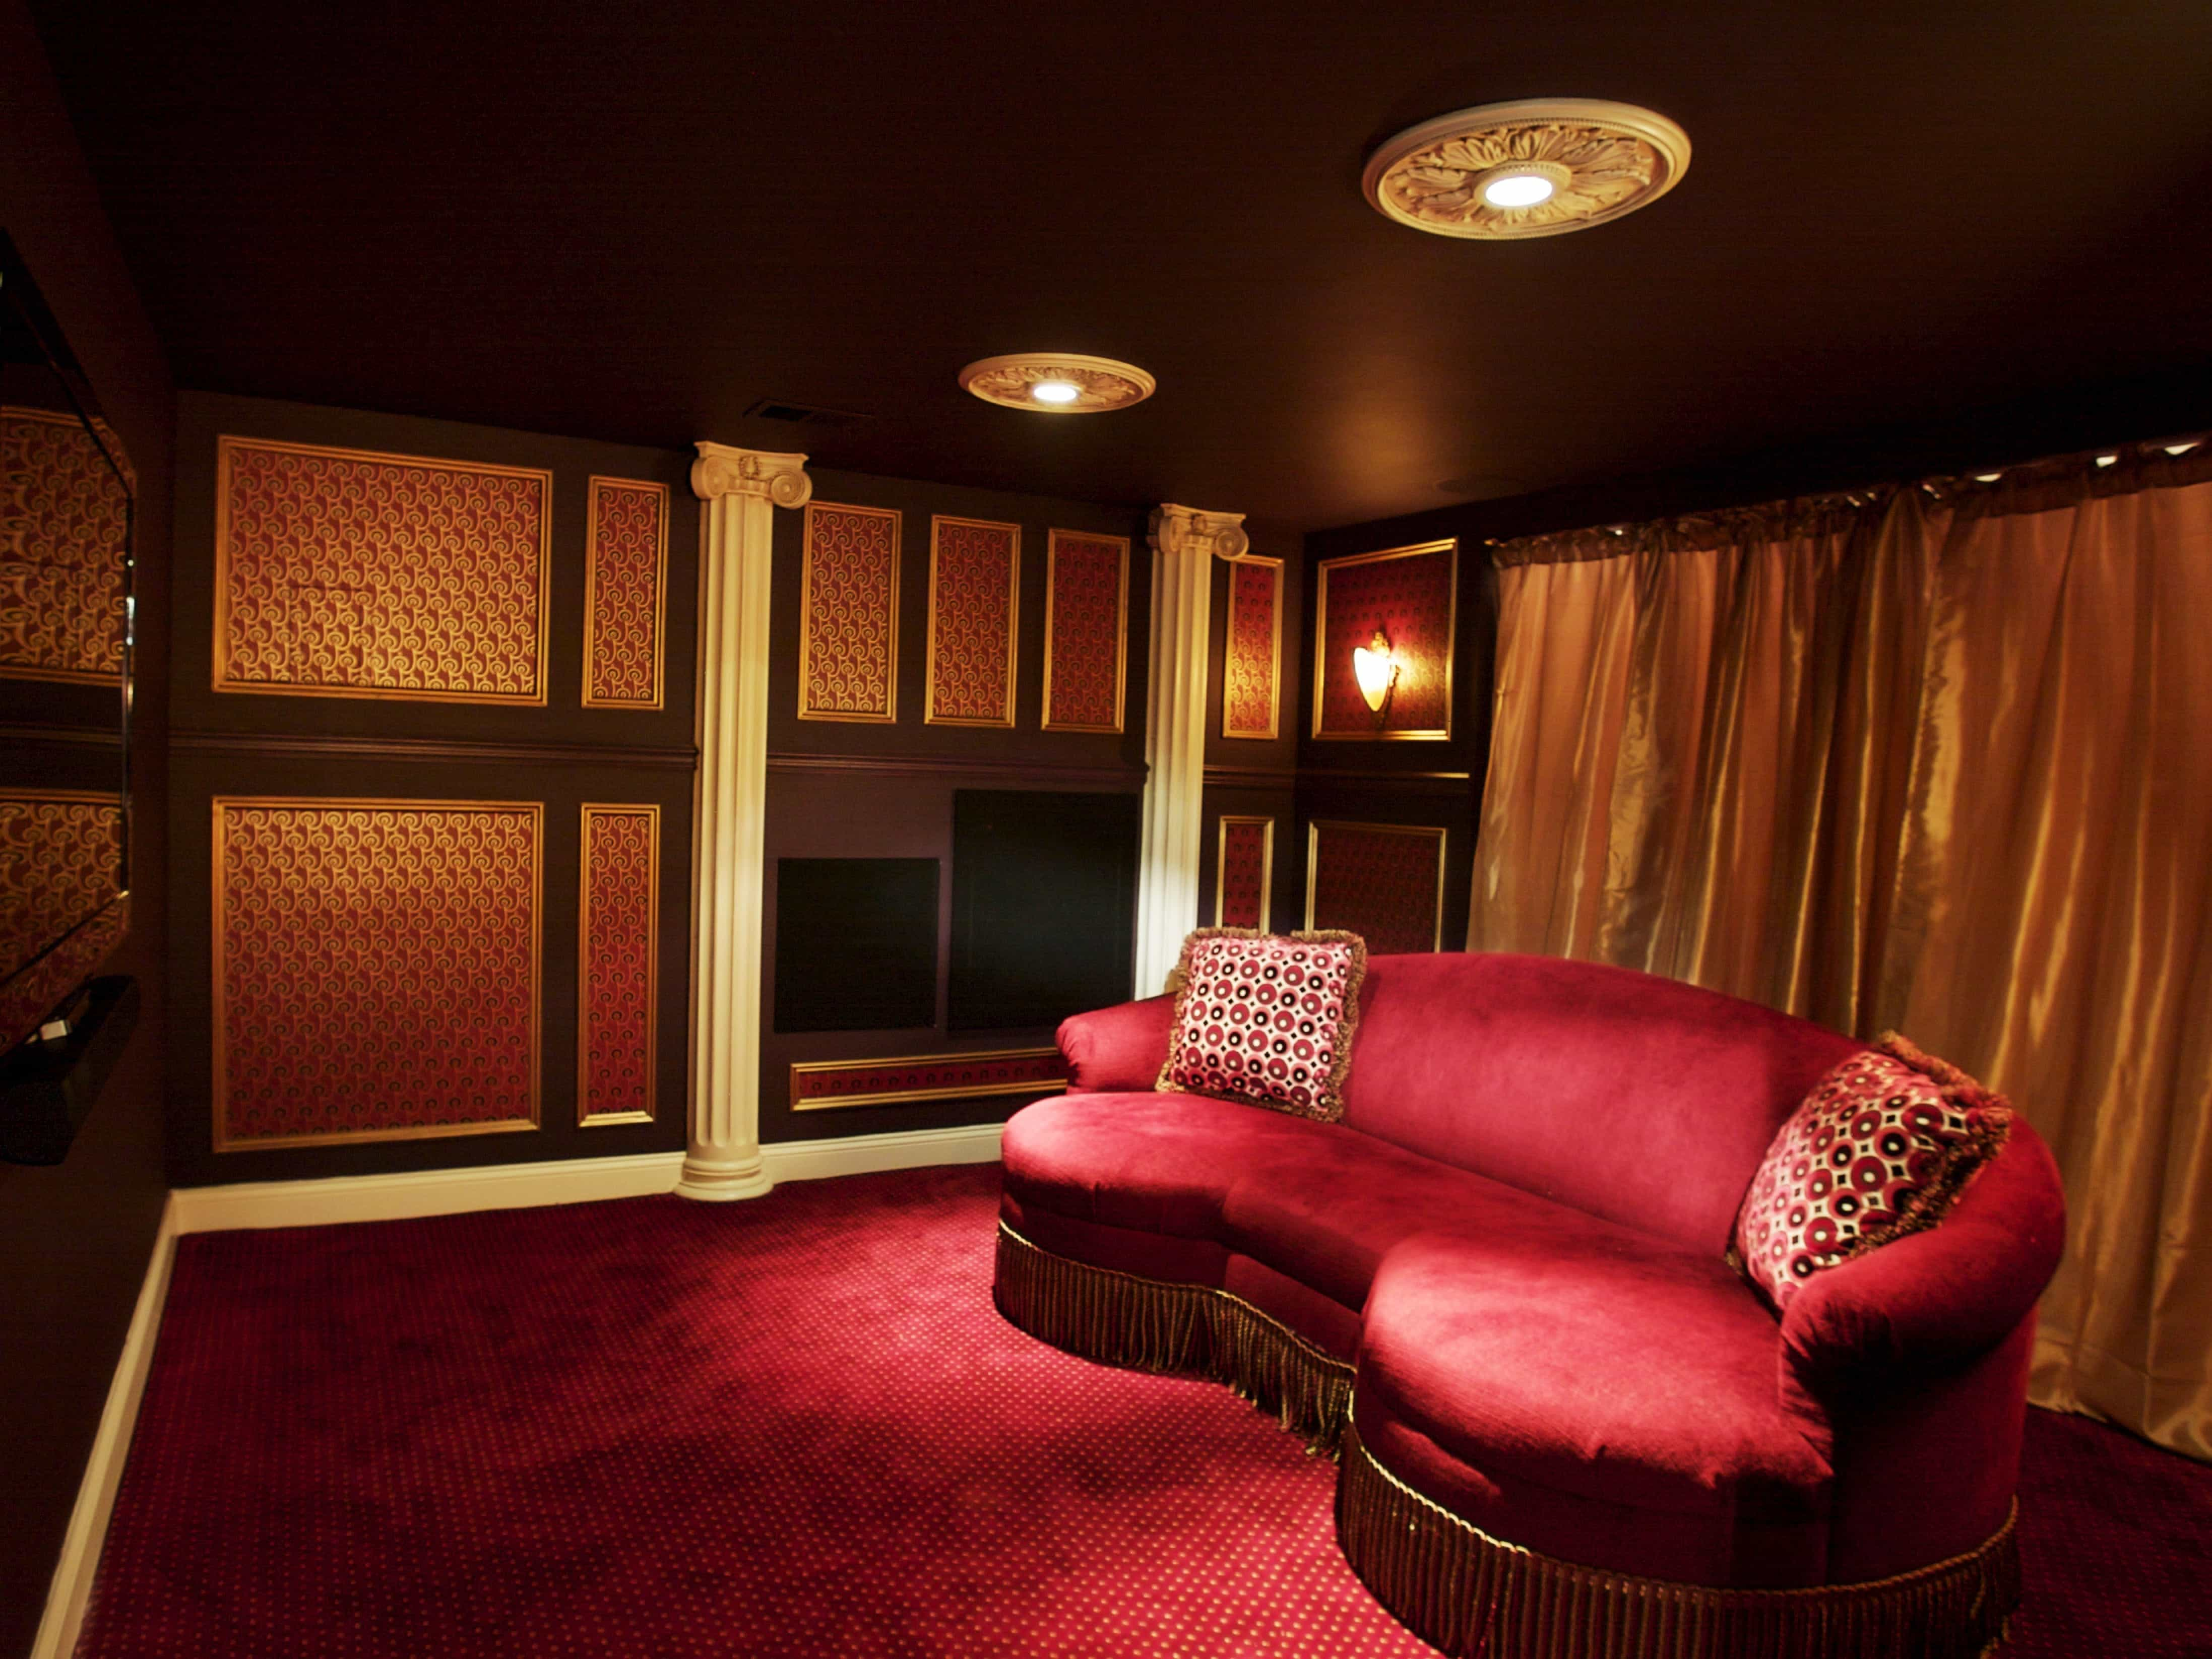 Dramatic Basement Home Theater With Red Sofa (Image 8 of 21)